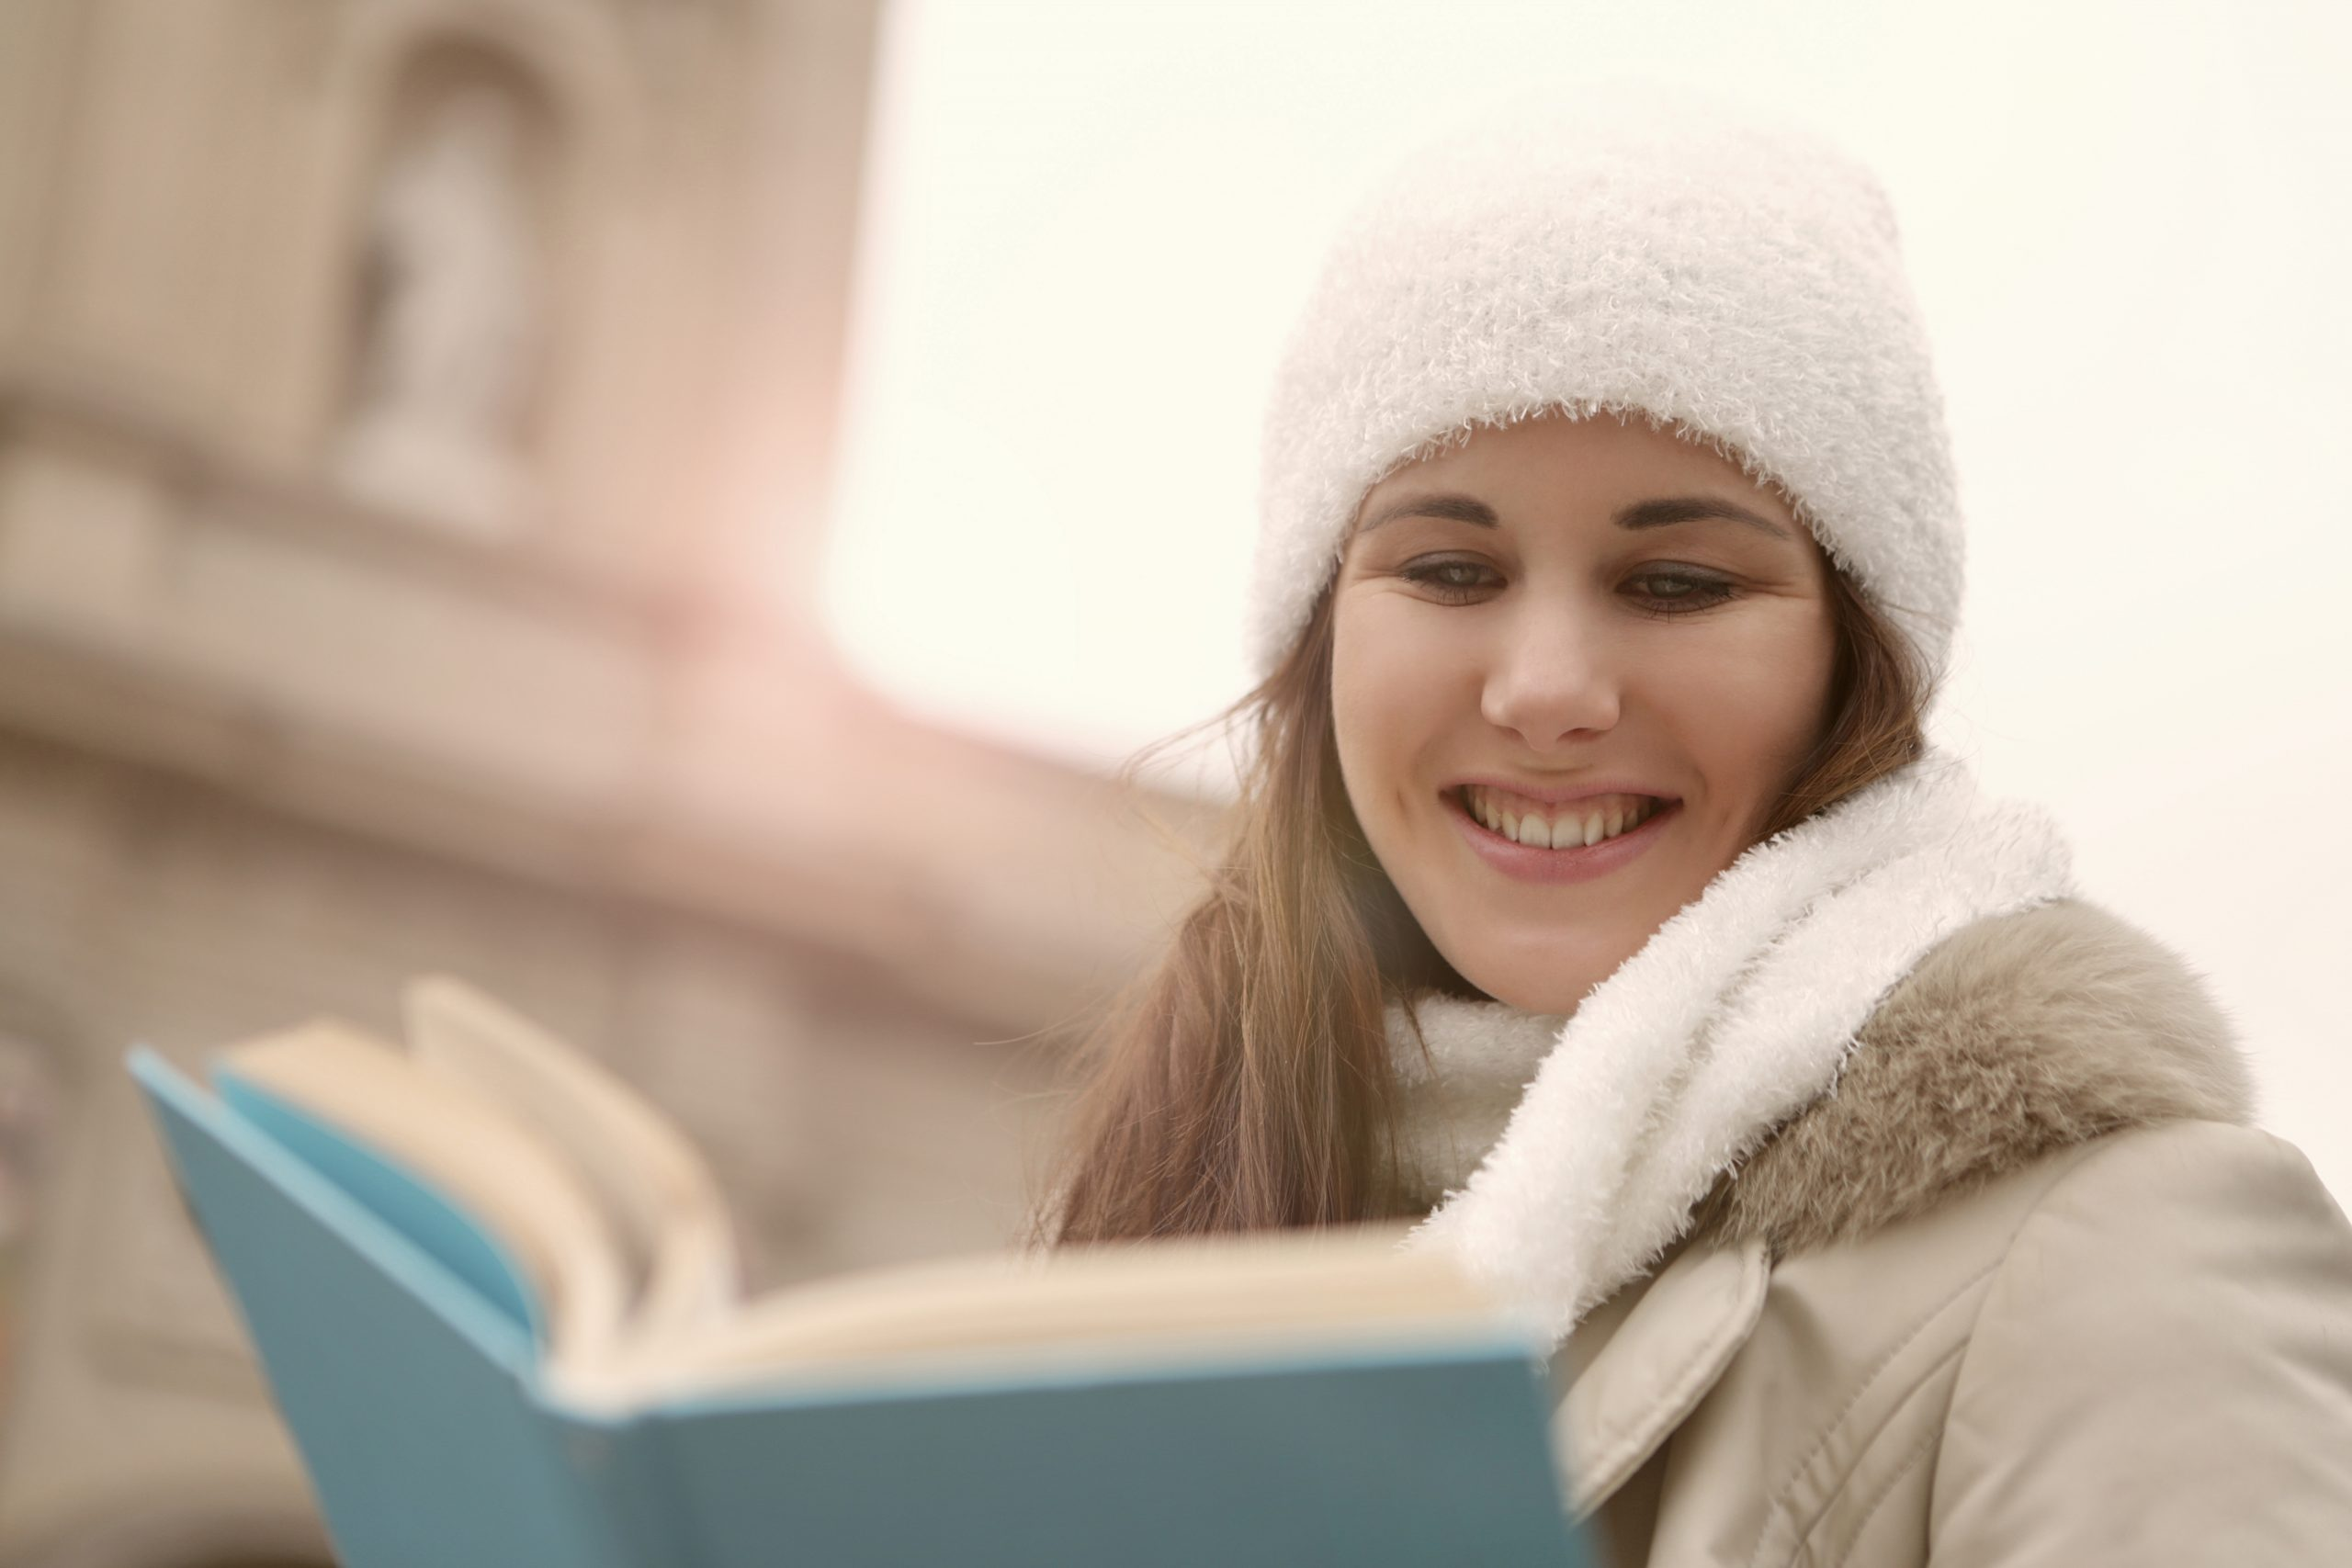 Canva - A Happy Woman in White Knitted Beanie Reading a Book